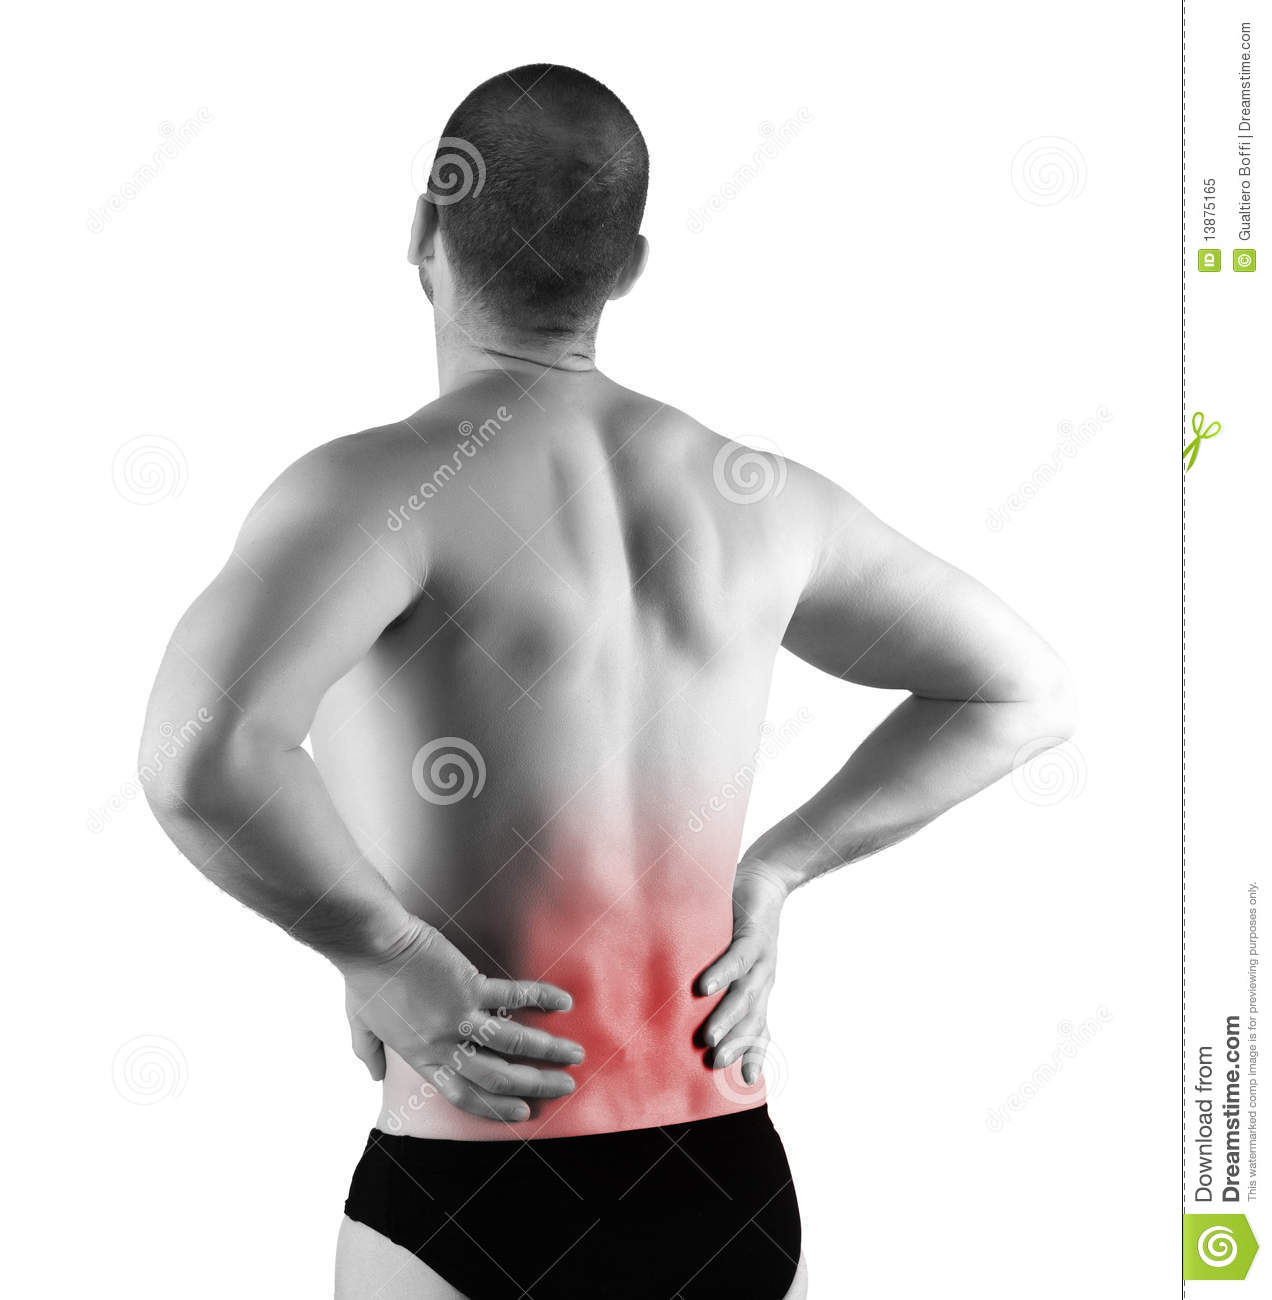 Young man with back pain in the red zone.